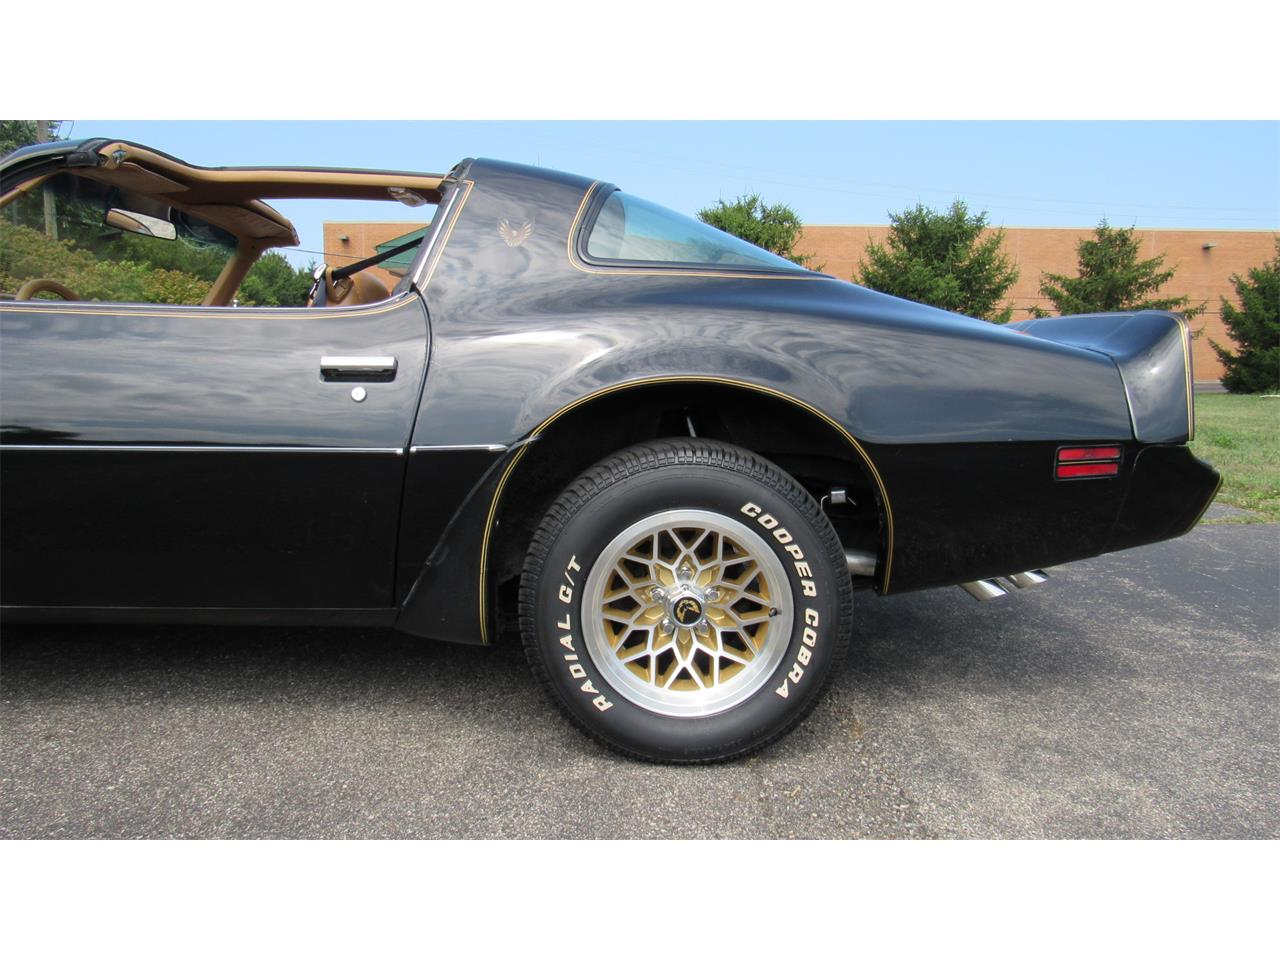 1979 Pontiac Firebird Trans Am for sale in Milford, OH – photo 33